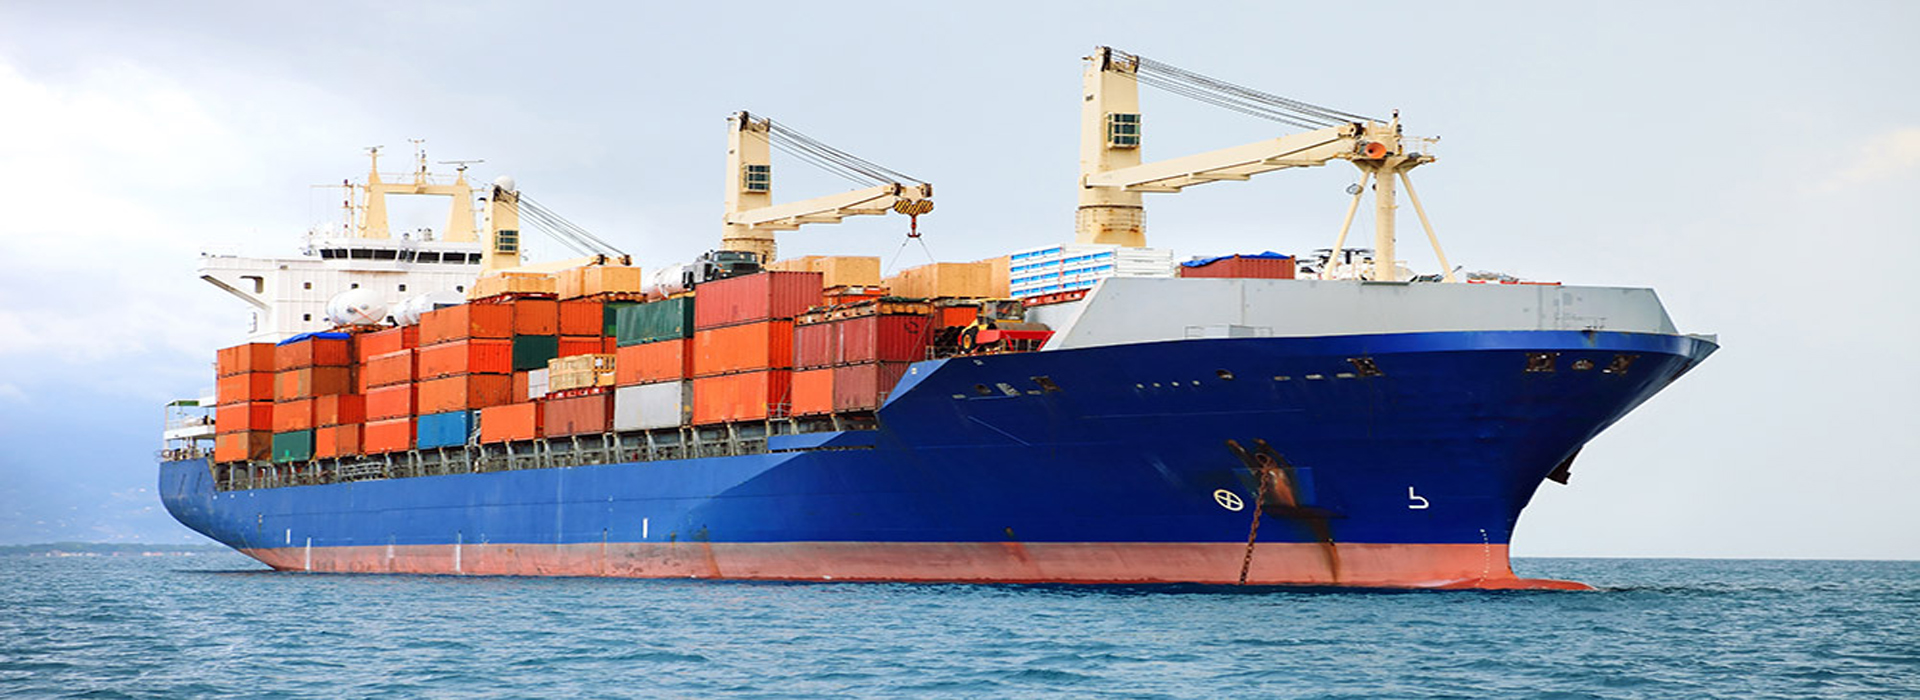 sea freight International ocean freight rate quote contact center dhl express dhl parcel dhl ecommerce.